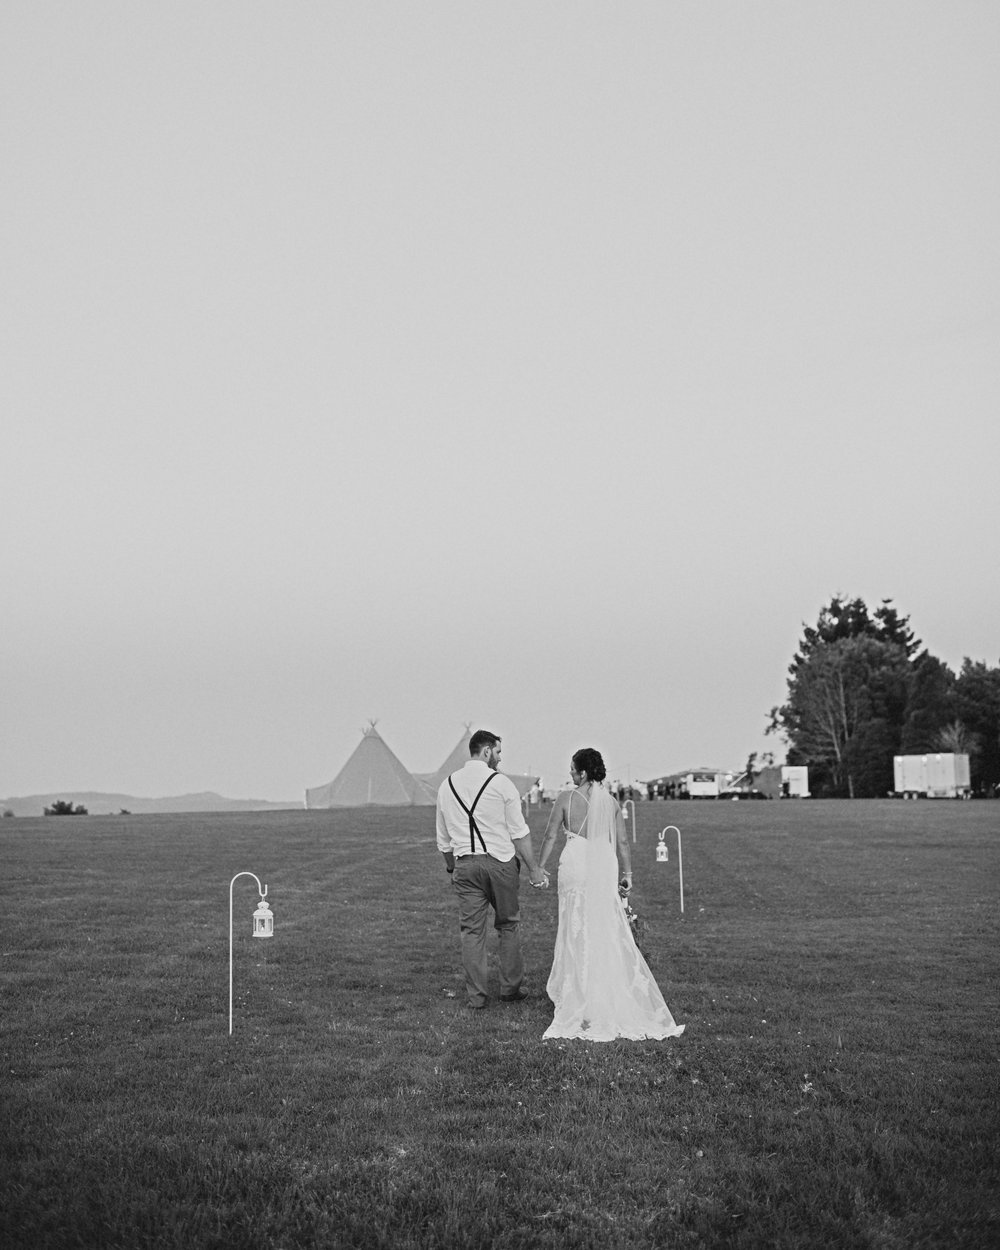 20181020_Sarah_Rob_Wedding-787-Edit-4.jpg